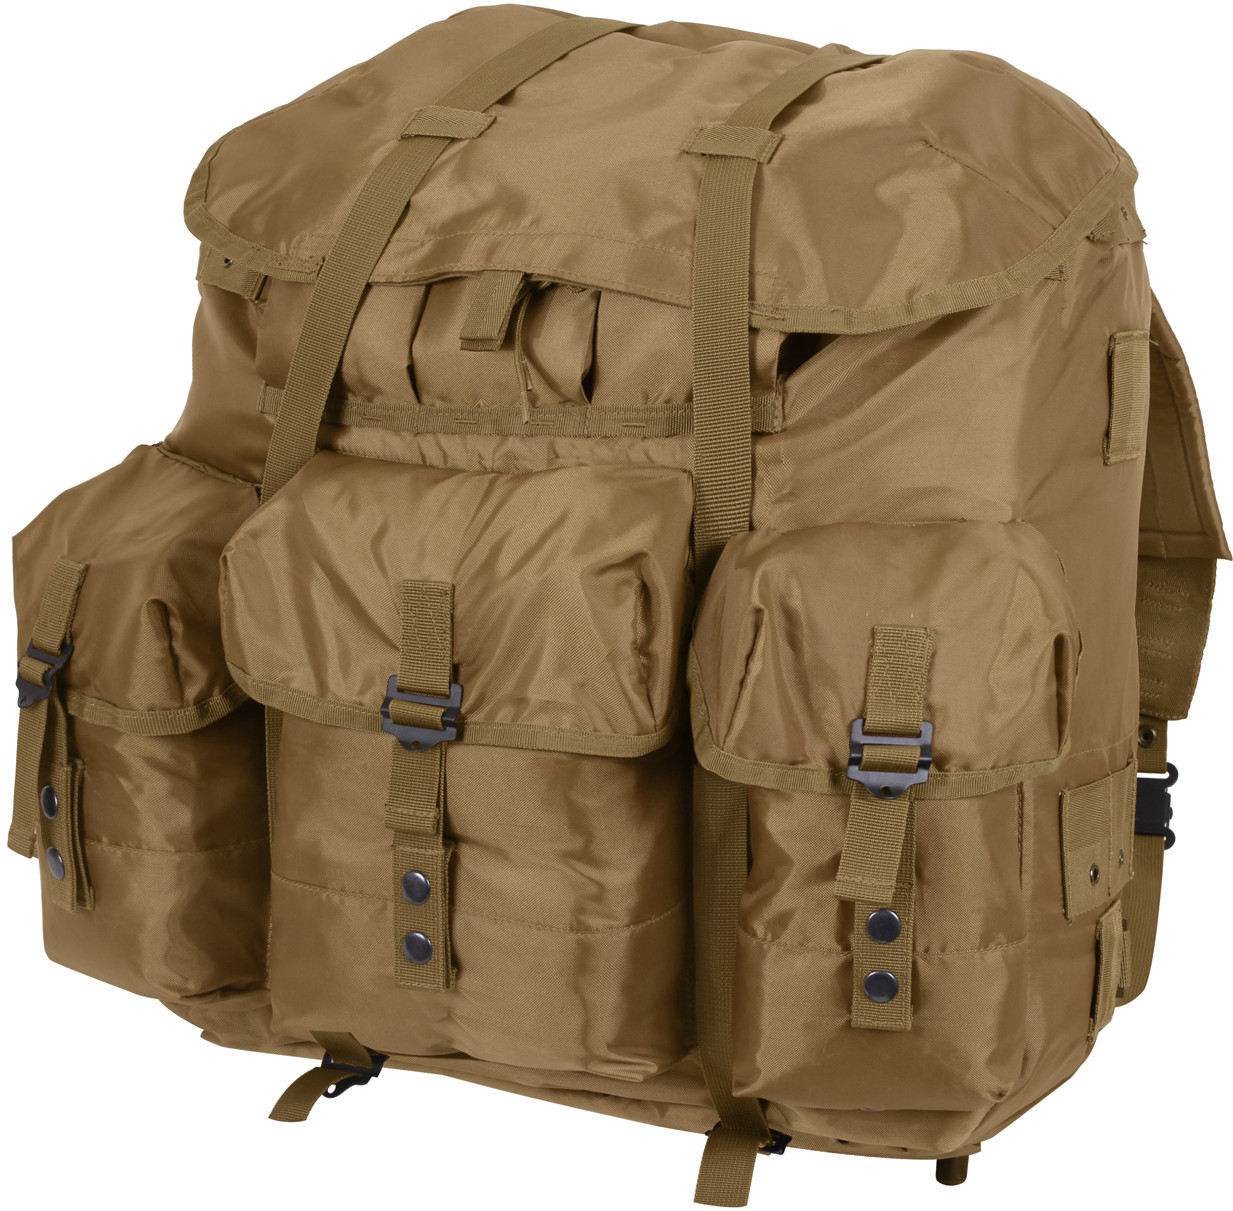 More Views. Coyote Brown Military Large Alice Pack Backpack ... 914c2233468